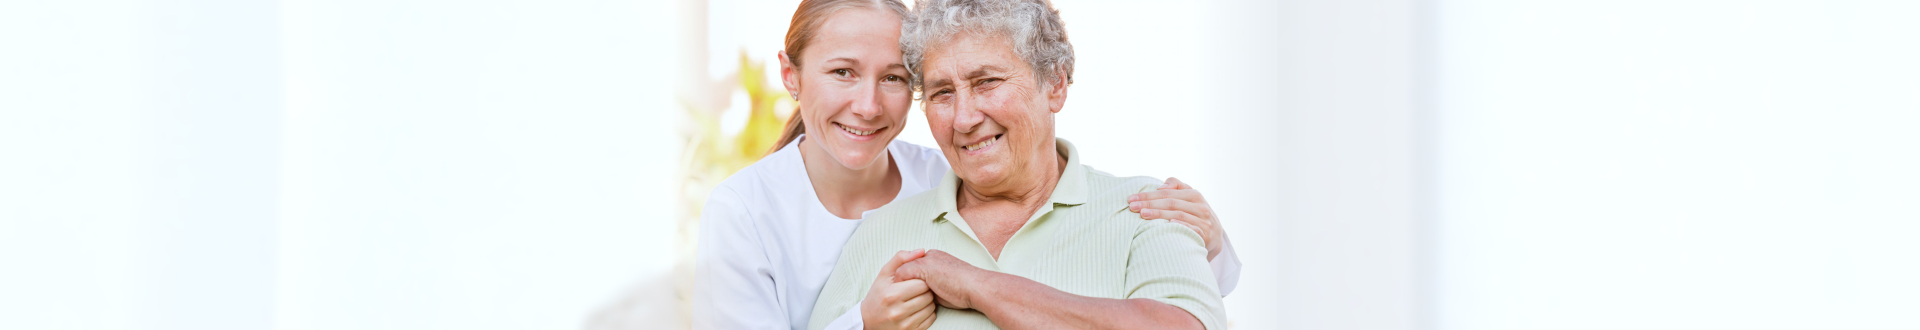 caregiver smiling with senior woman